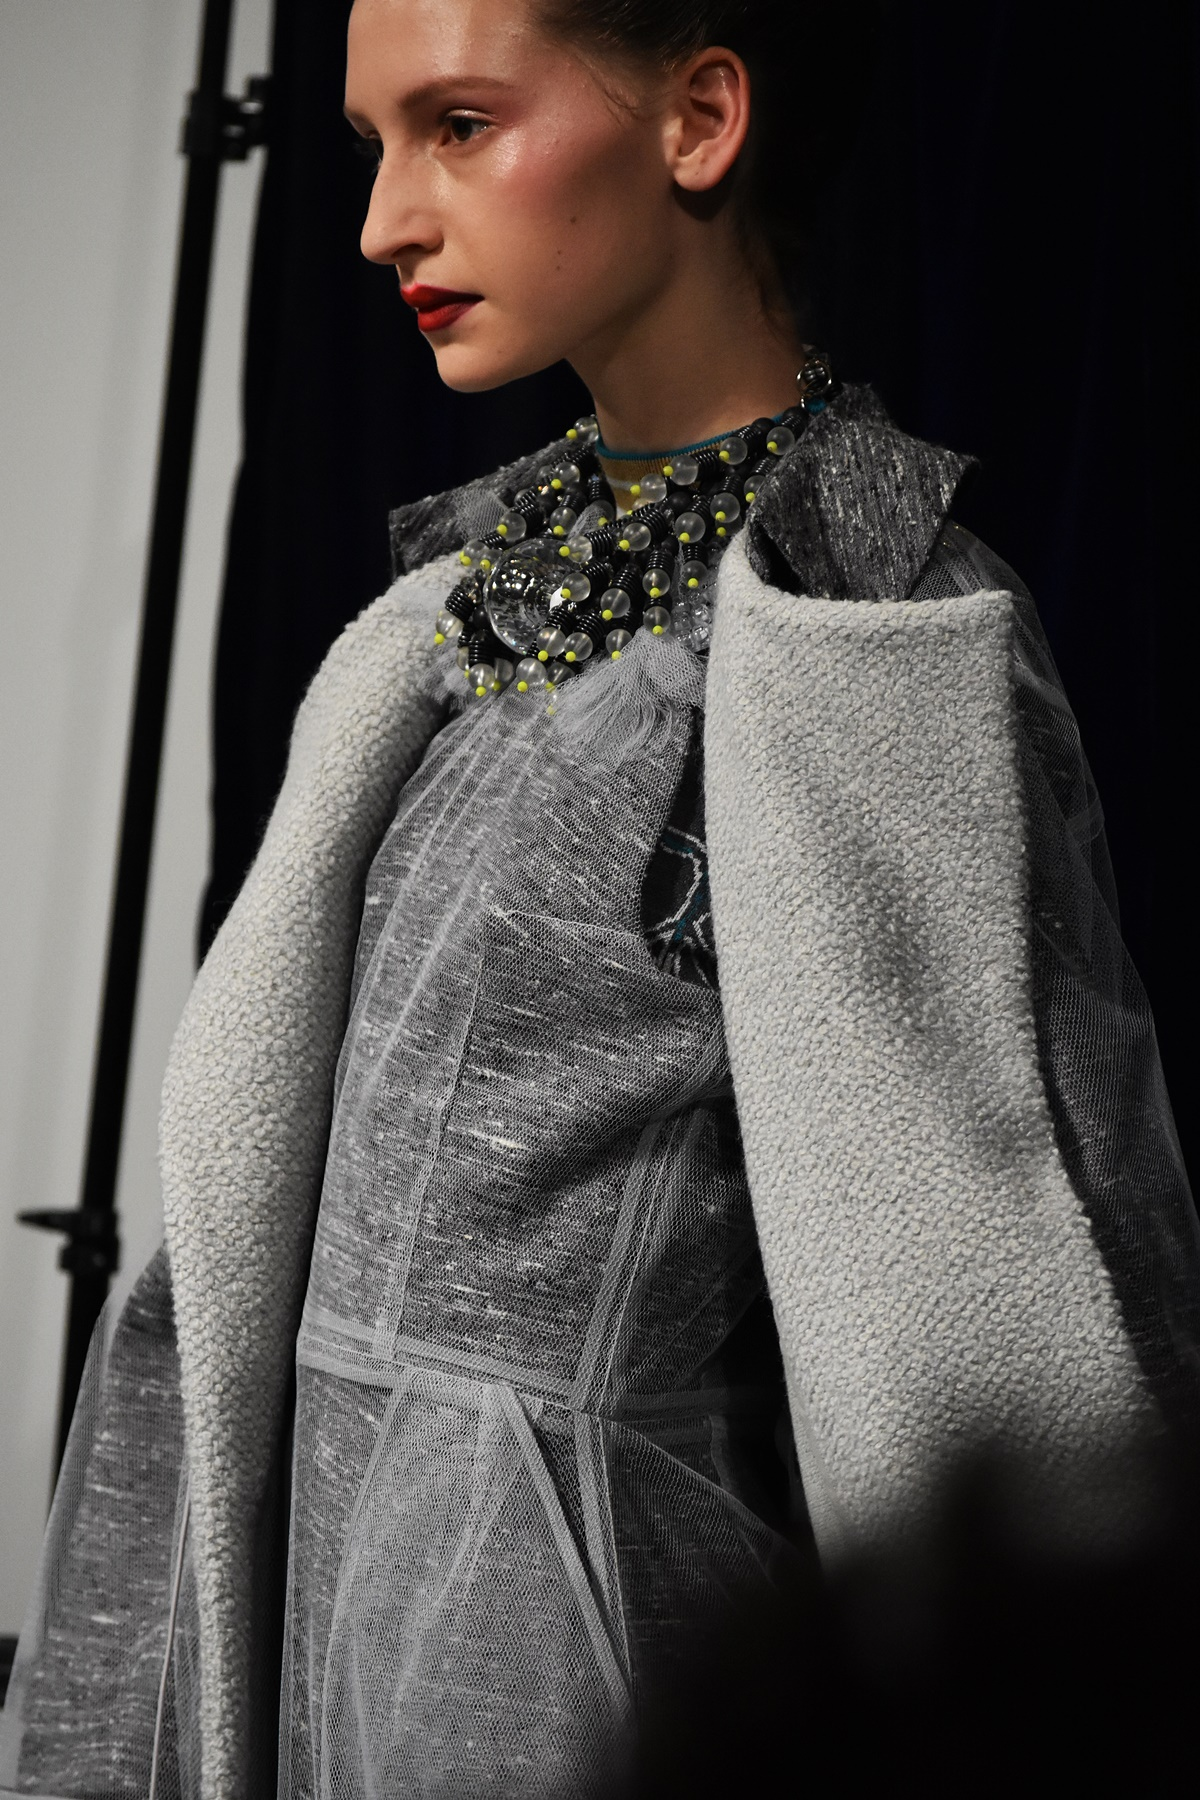 Krsty Ward, David Longshaw OnOff fashion show at LFW Feb19, highlights by Think Feel Discover